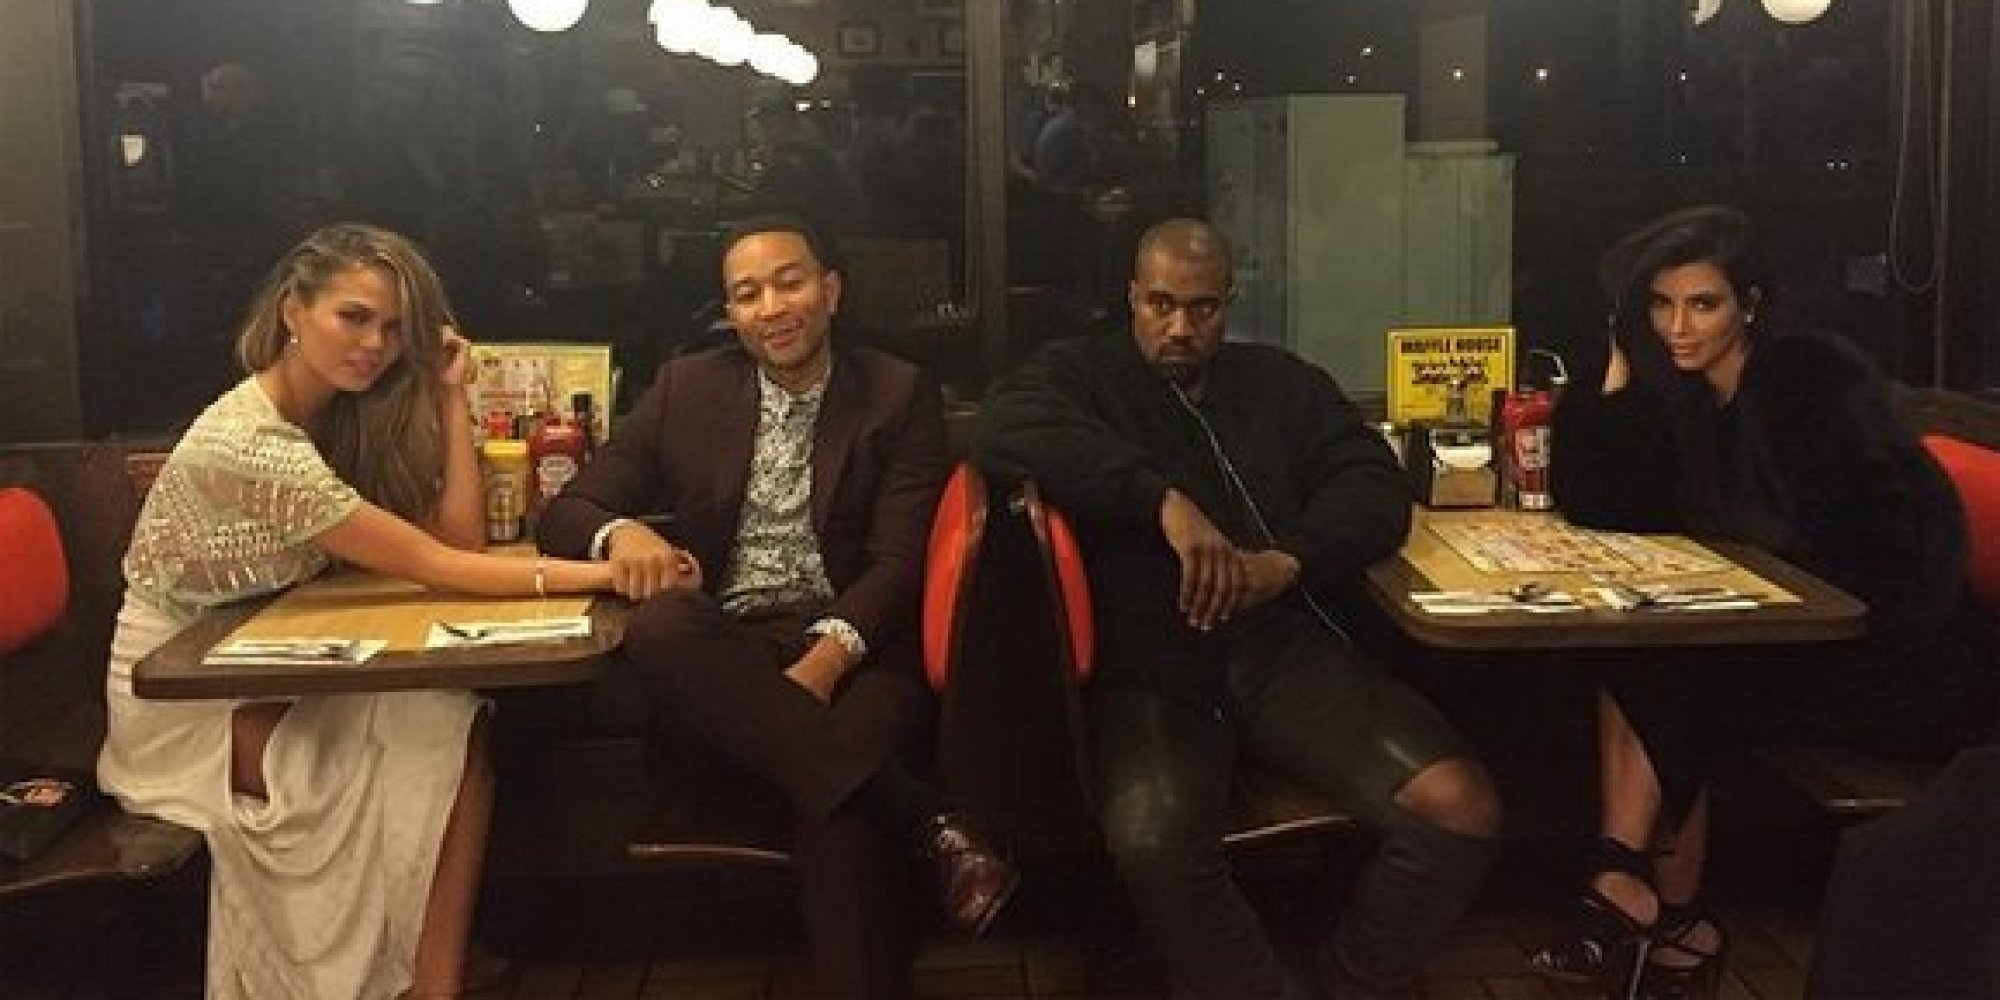 Kimye John Legend And Chrissy Teigen Have Double Date At Waffle